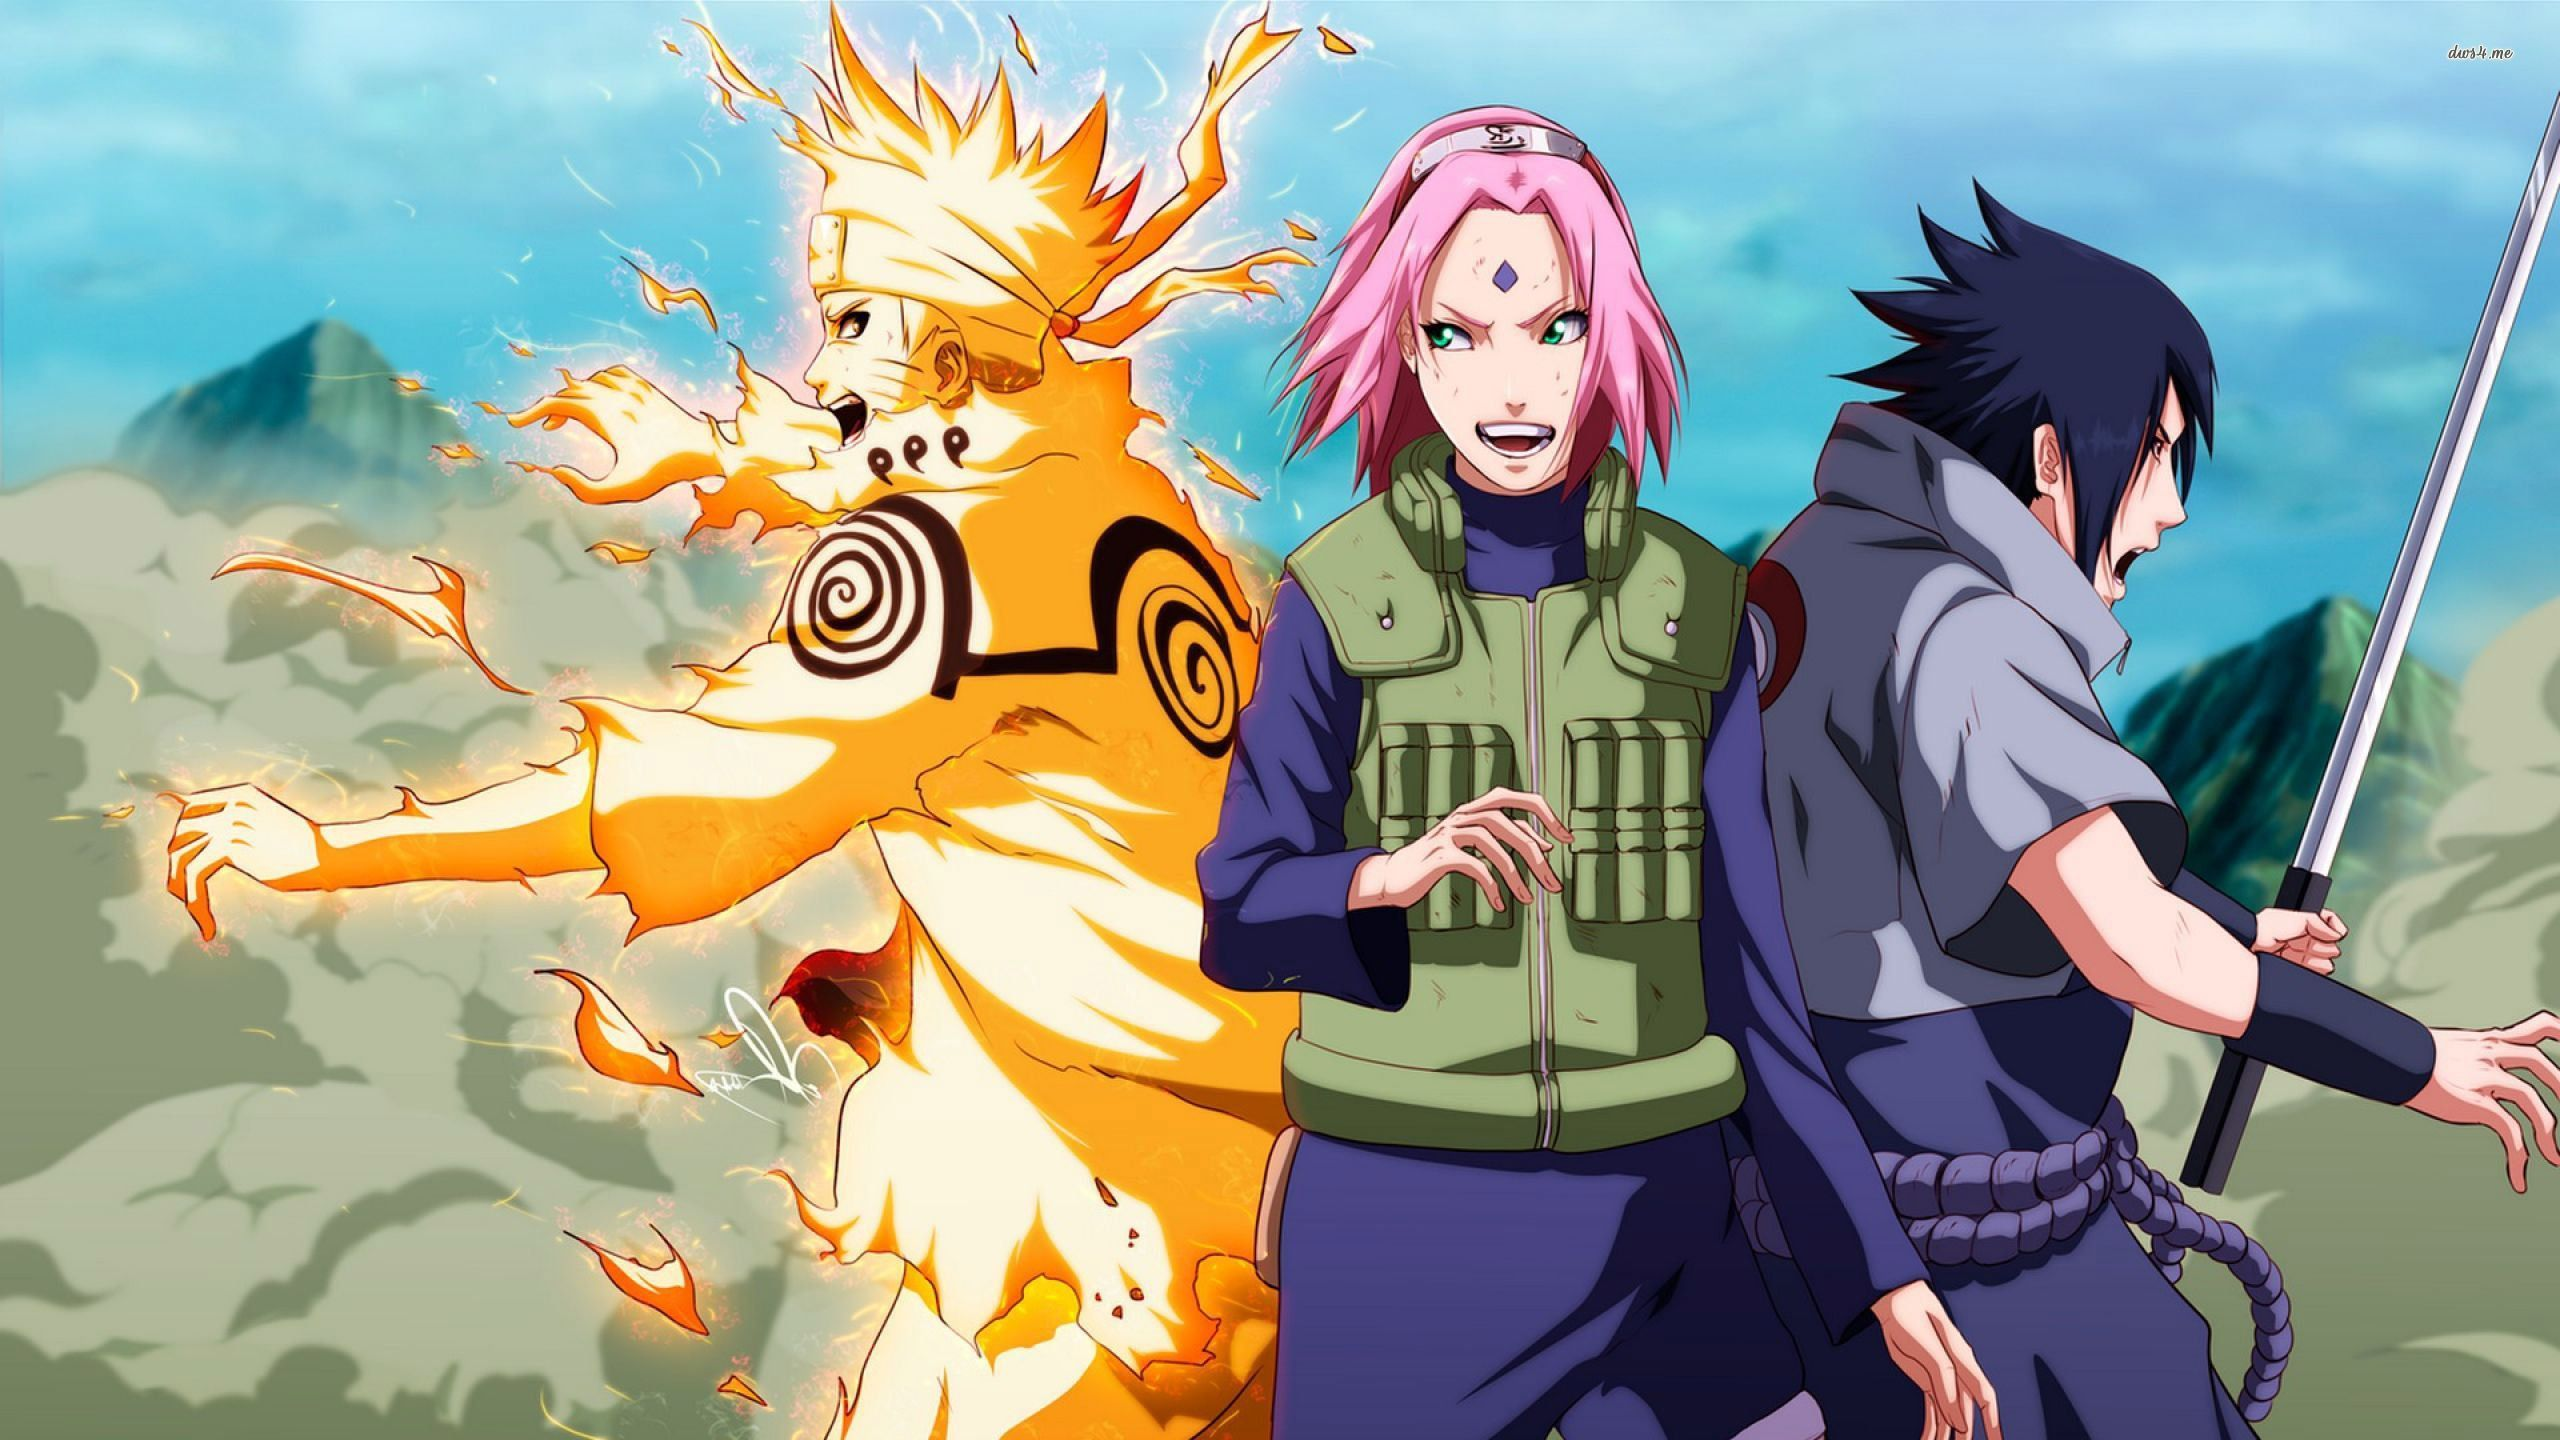 Naruto Pc Wallpapers Top Free Naruto Pc Backgrounds Wallpaperaccess